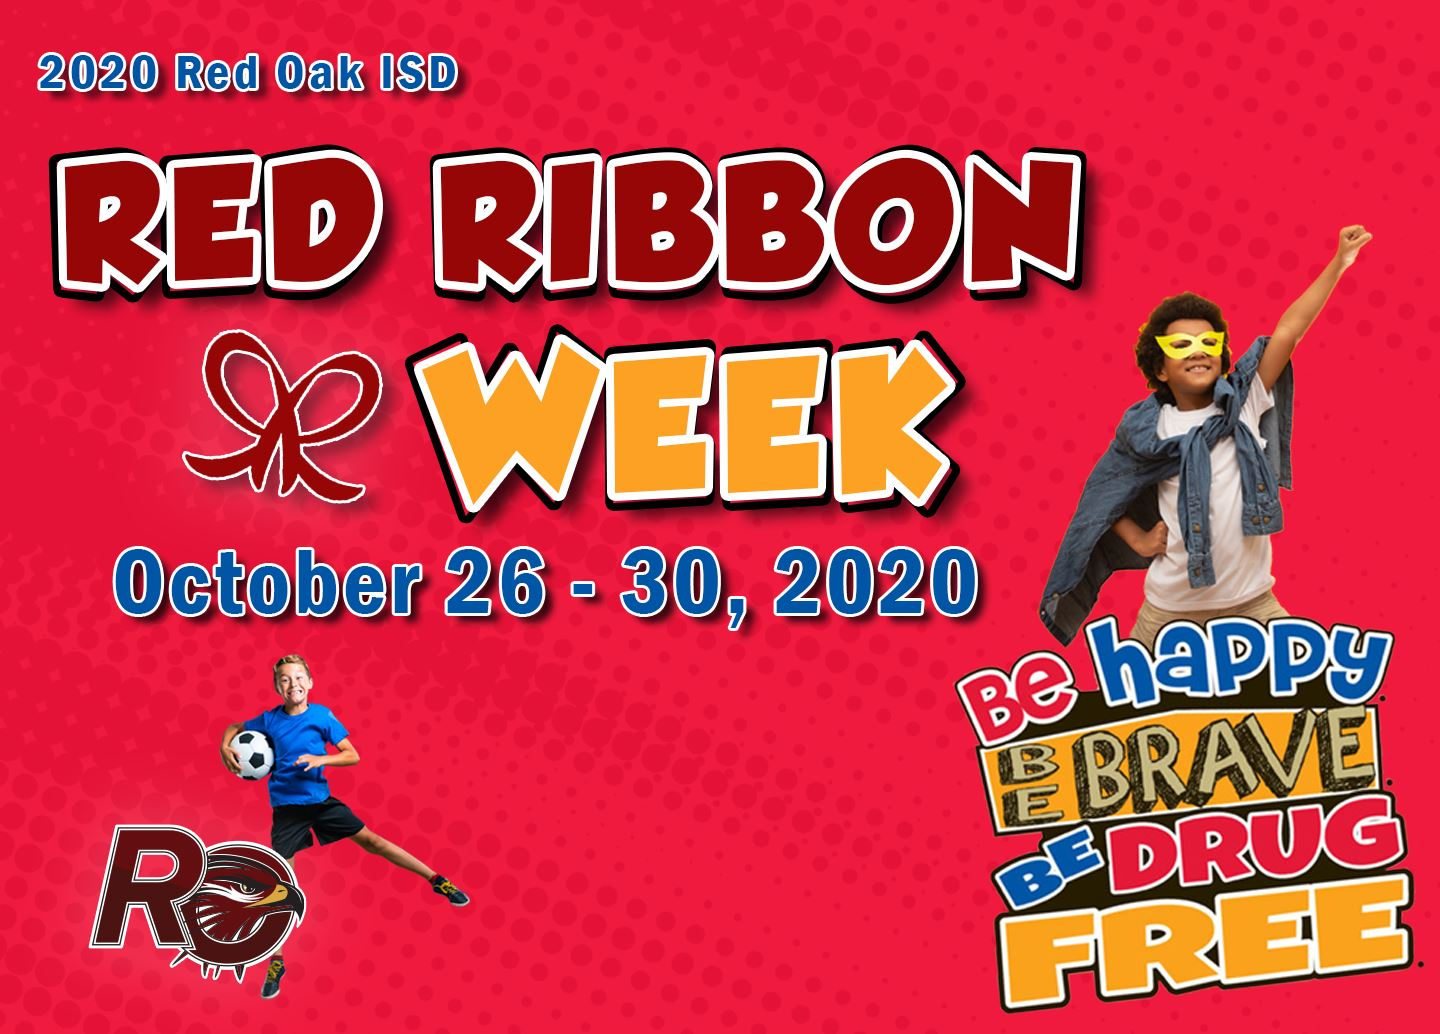 ROISD Red Ribbon Week on Oct. 26-30. Theme: Be Happy, Be Brave, Be Drug Free